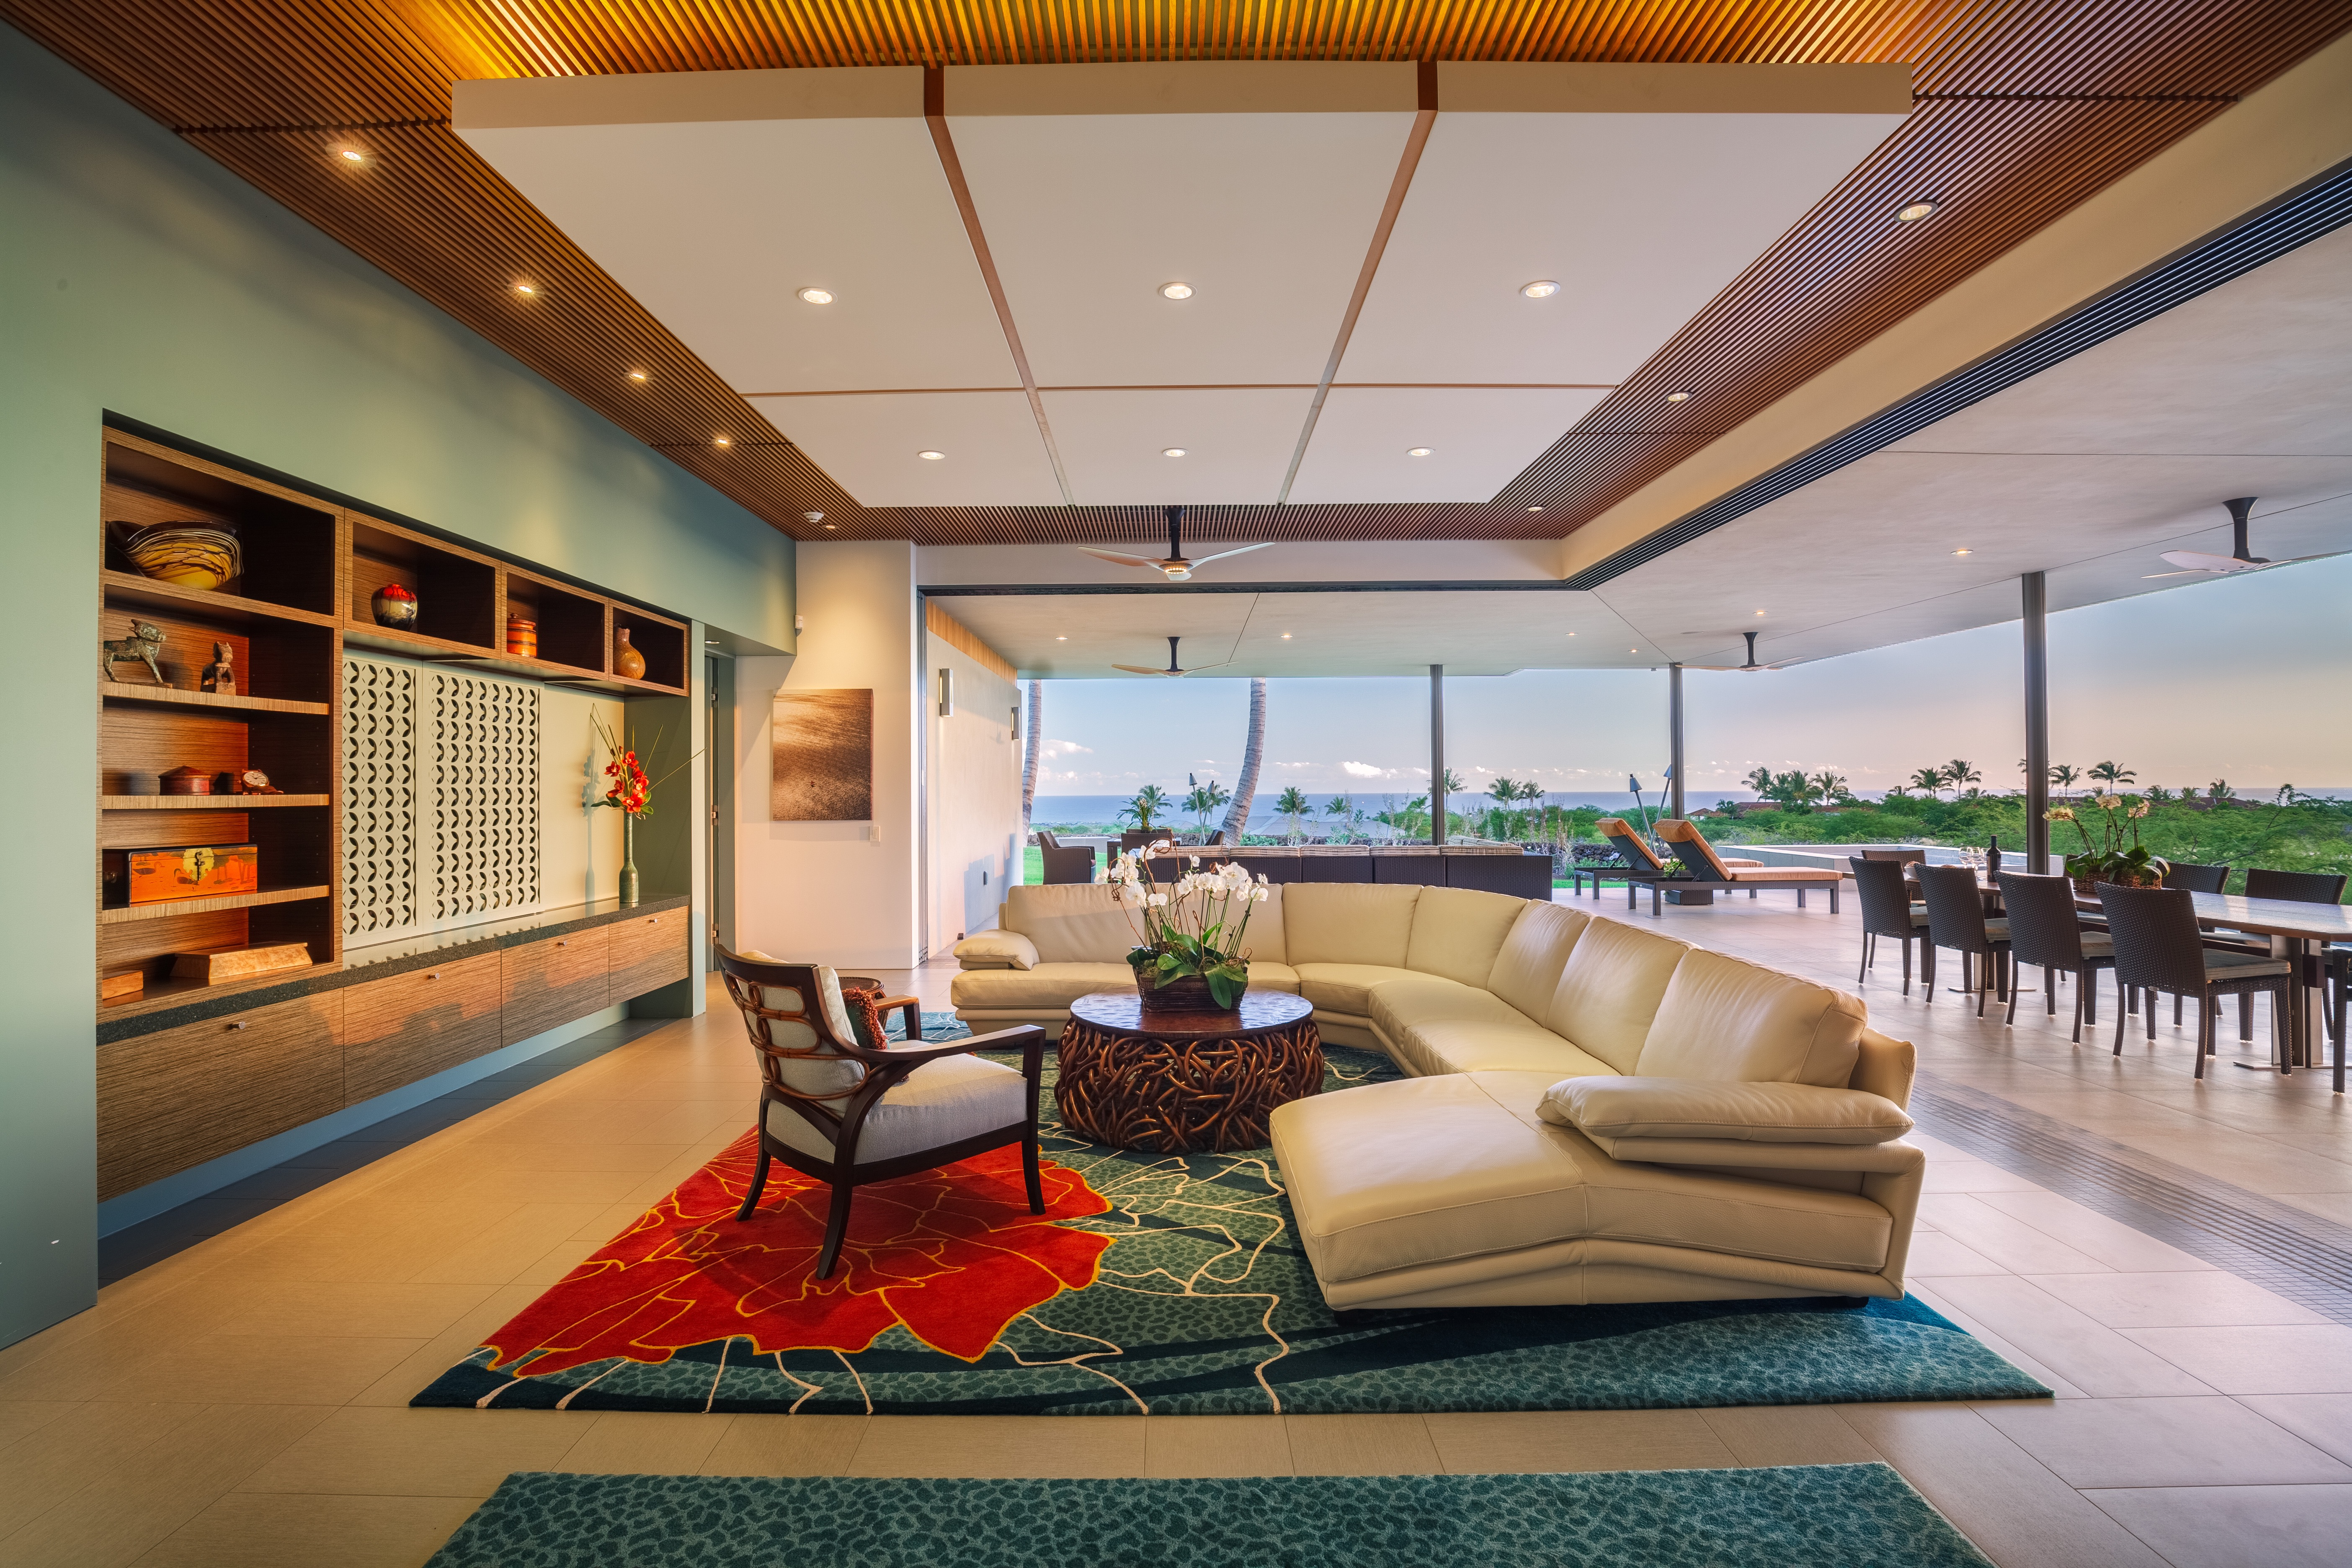 Drop Ceiling Ideas For Contemporary Living Room (Photo 3 of 4)